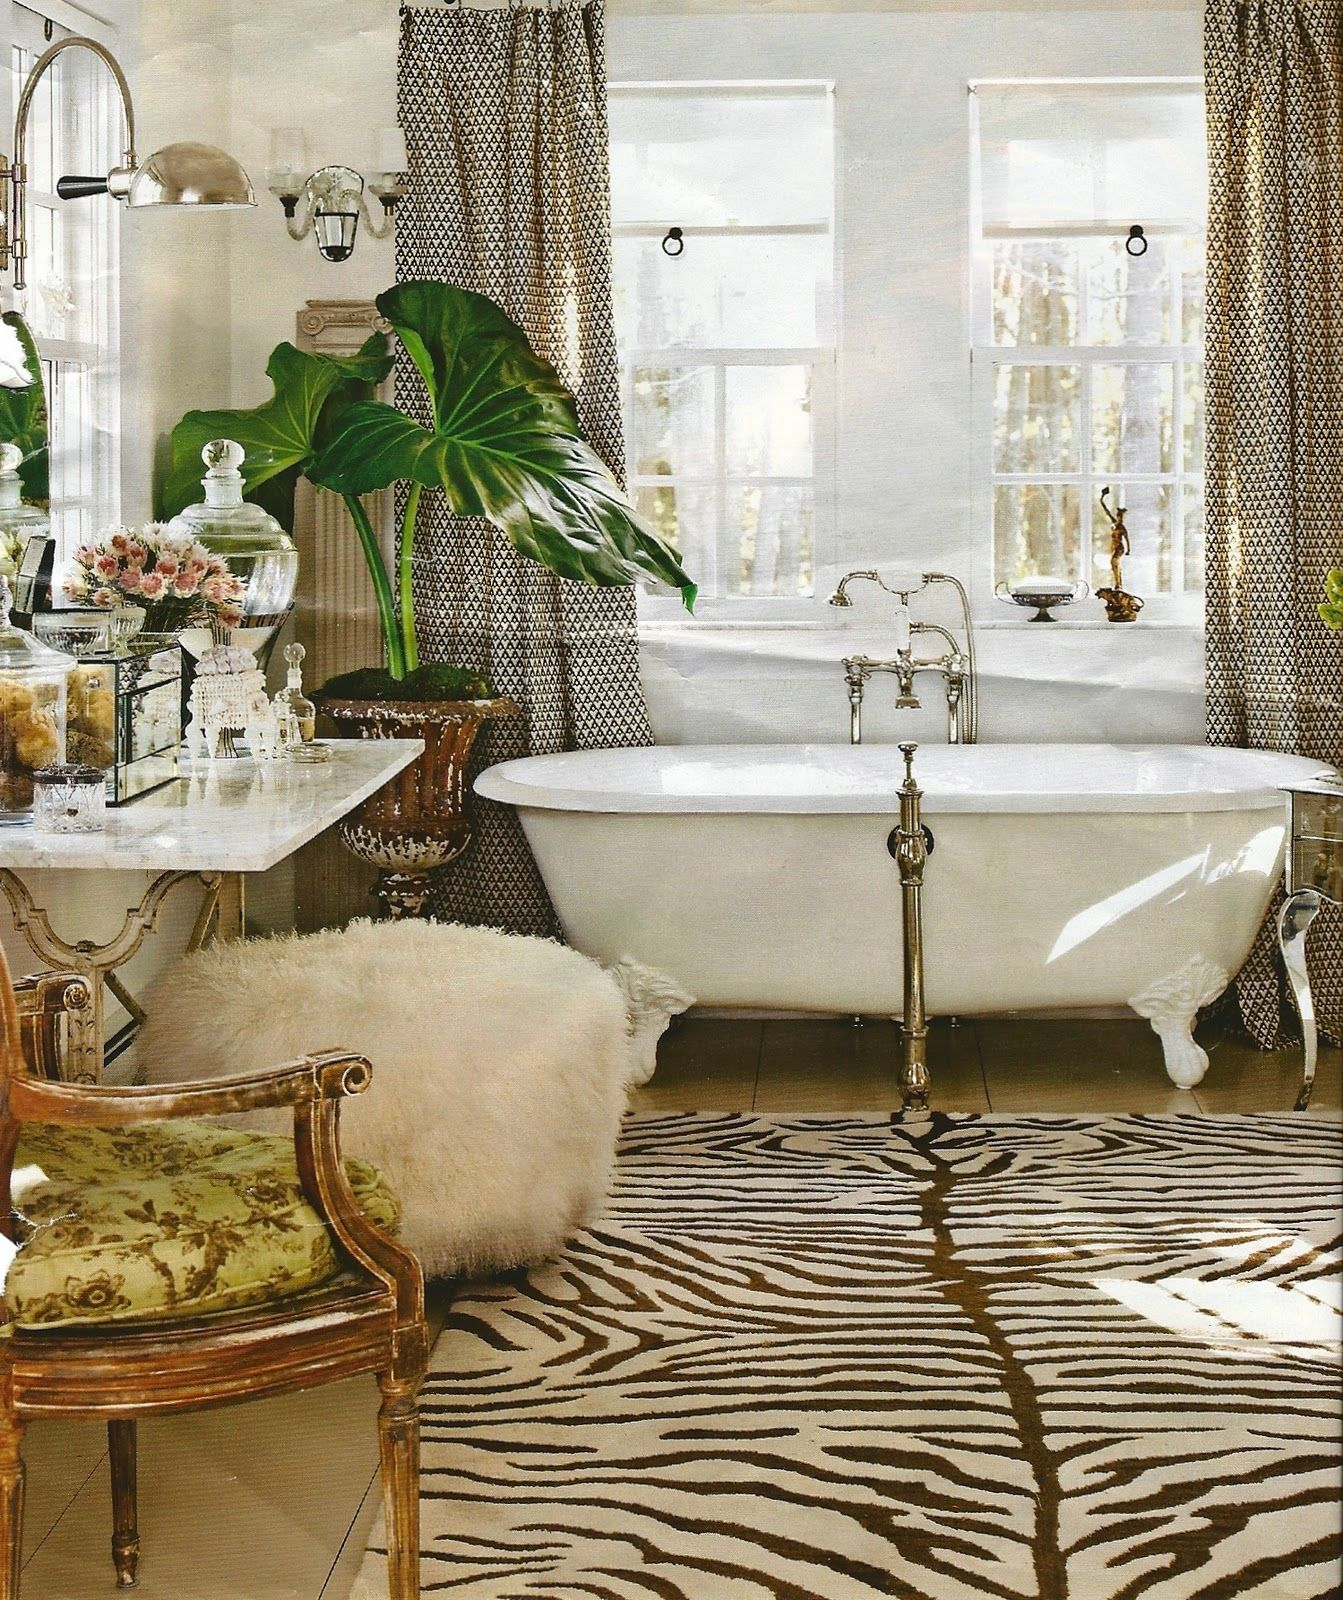 Chocolate Zebra Rug With Powderpuff Vanity Stool Bath - Beautiful bath rugs for bathroom decorating ideas